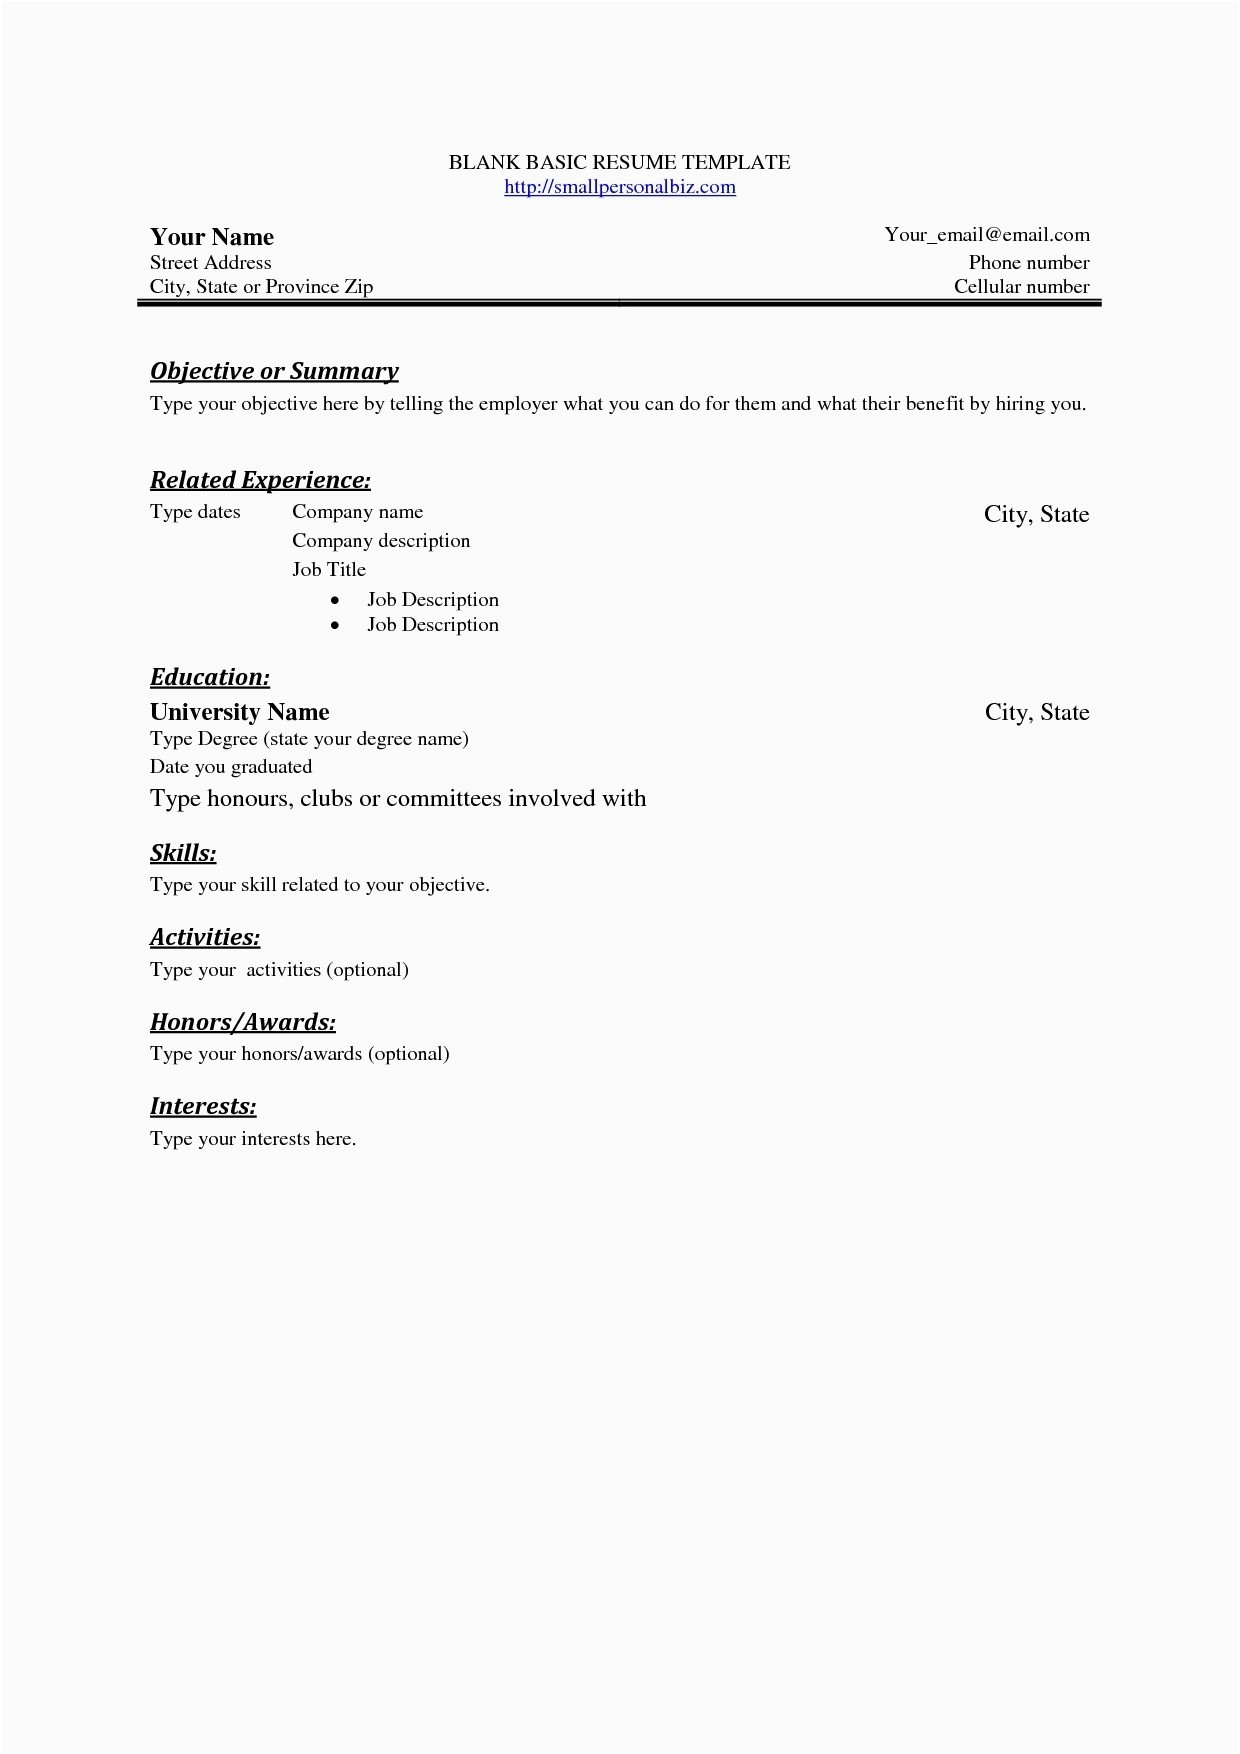 Cfo Cover Letter Template - Free Resume Writer Awesome Resume Writing Examples Luxury New